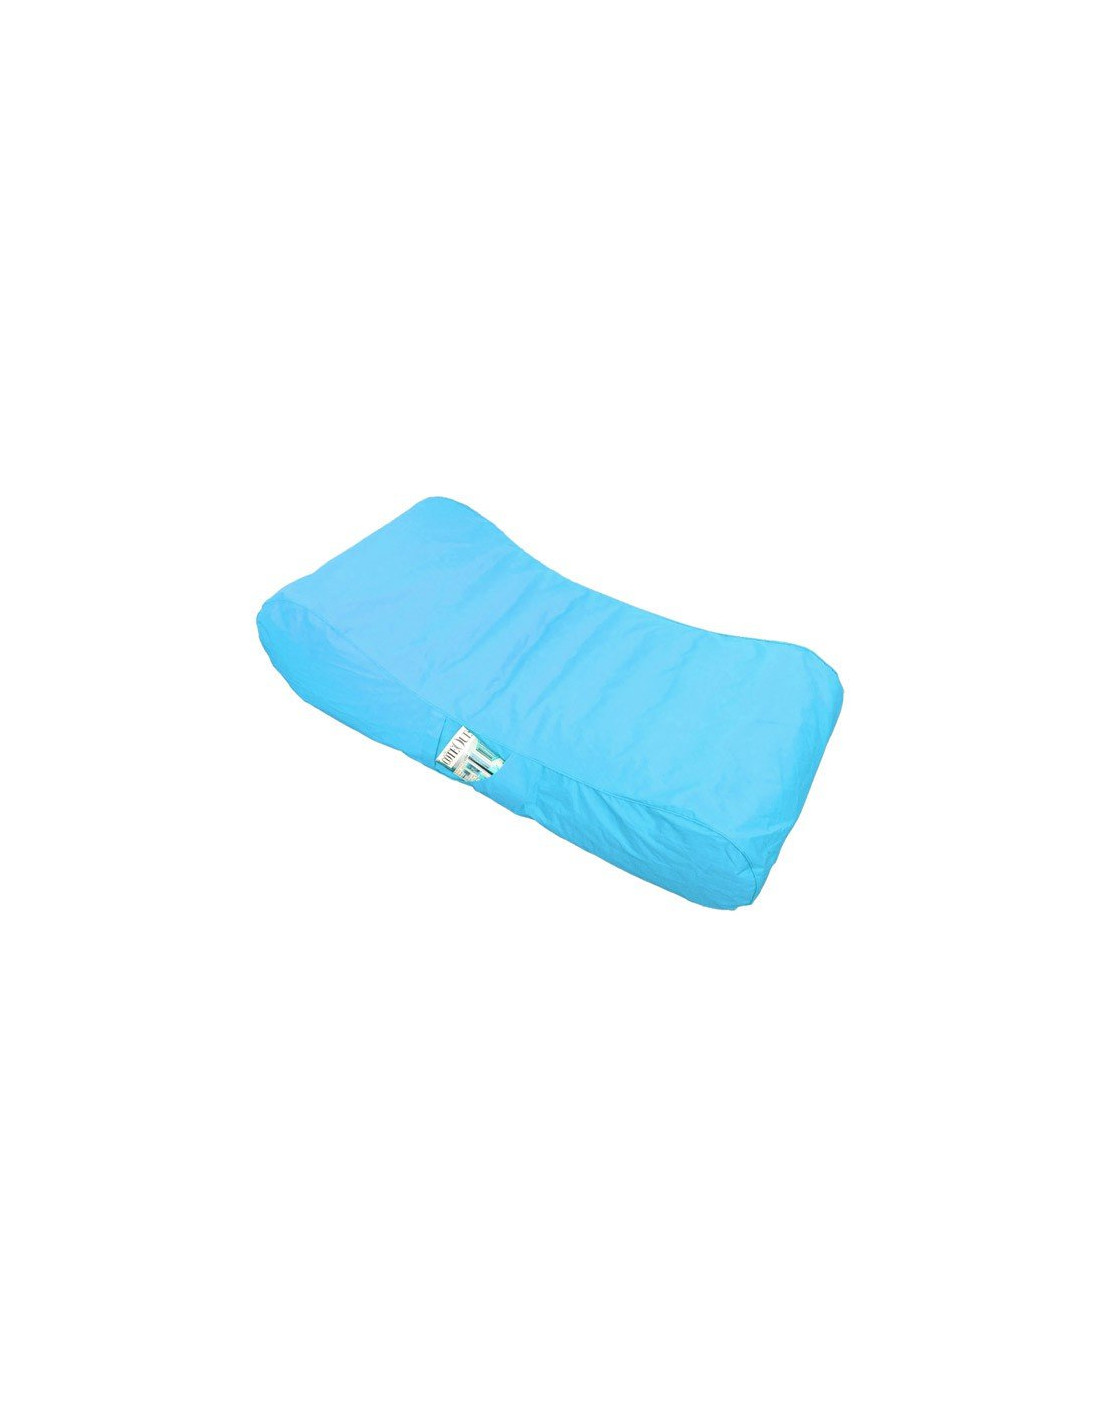 Matelas piscine mod le wave de sitinpool for Matelas piscine